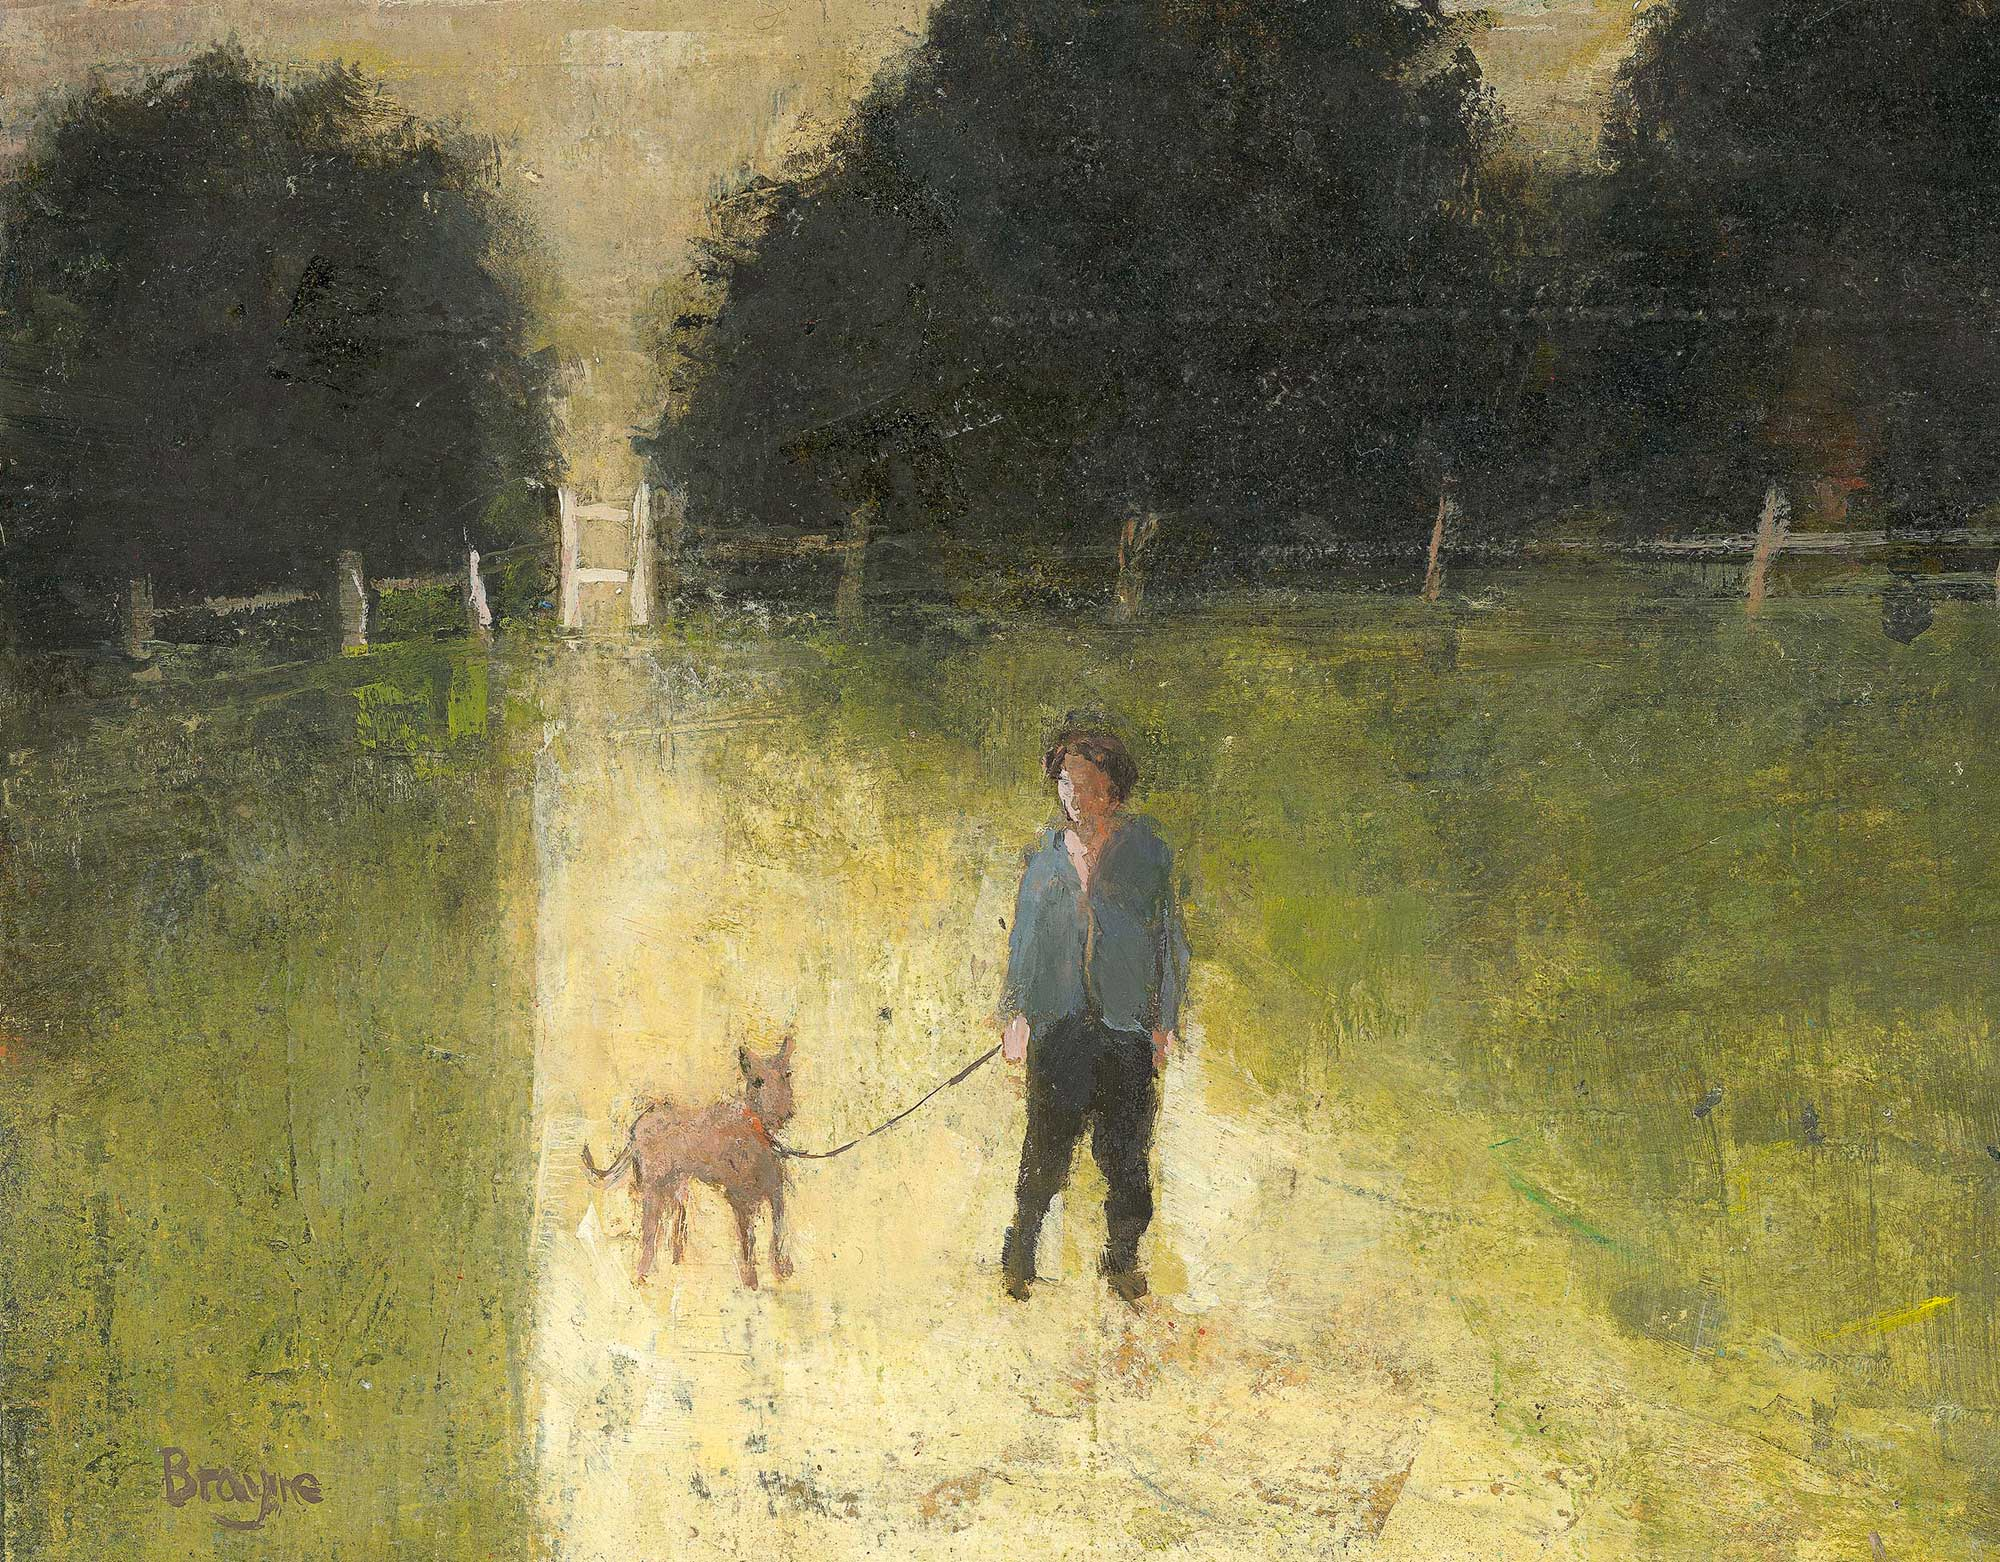 Man and a Dog by David Brayne RWS